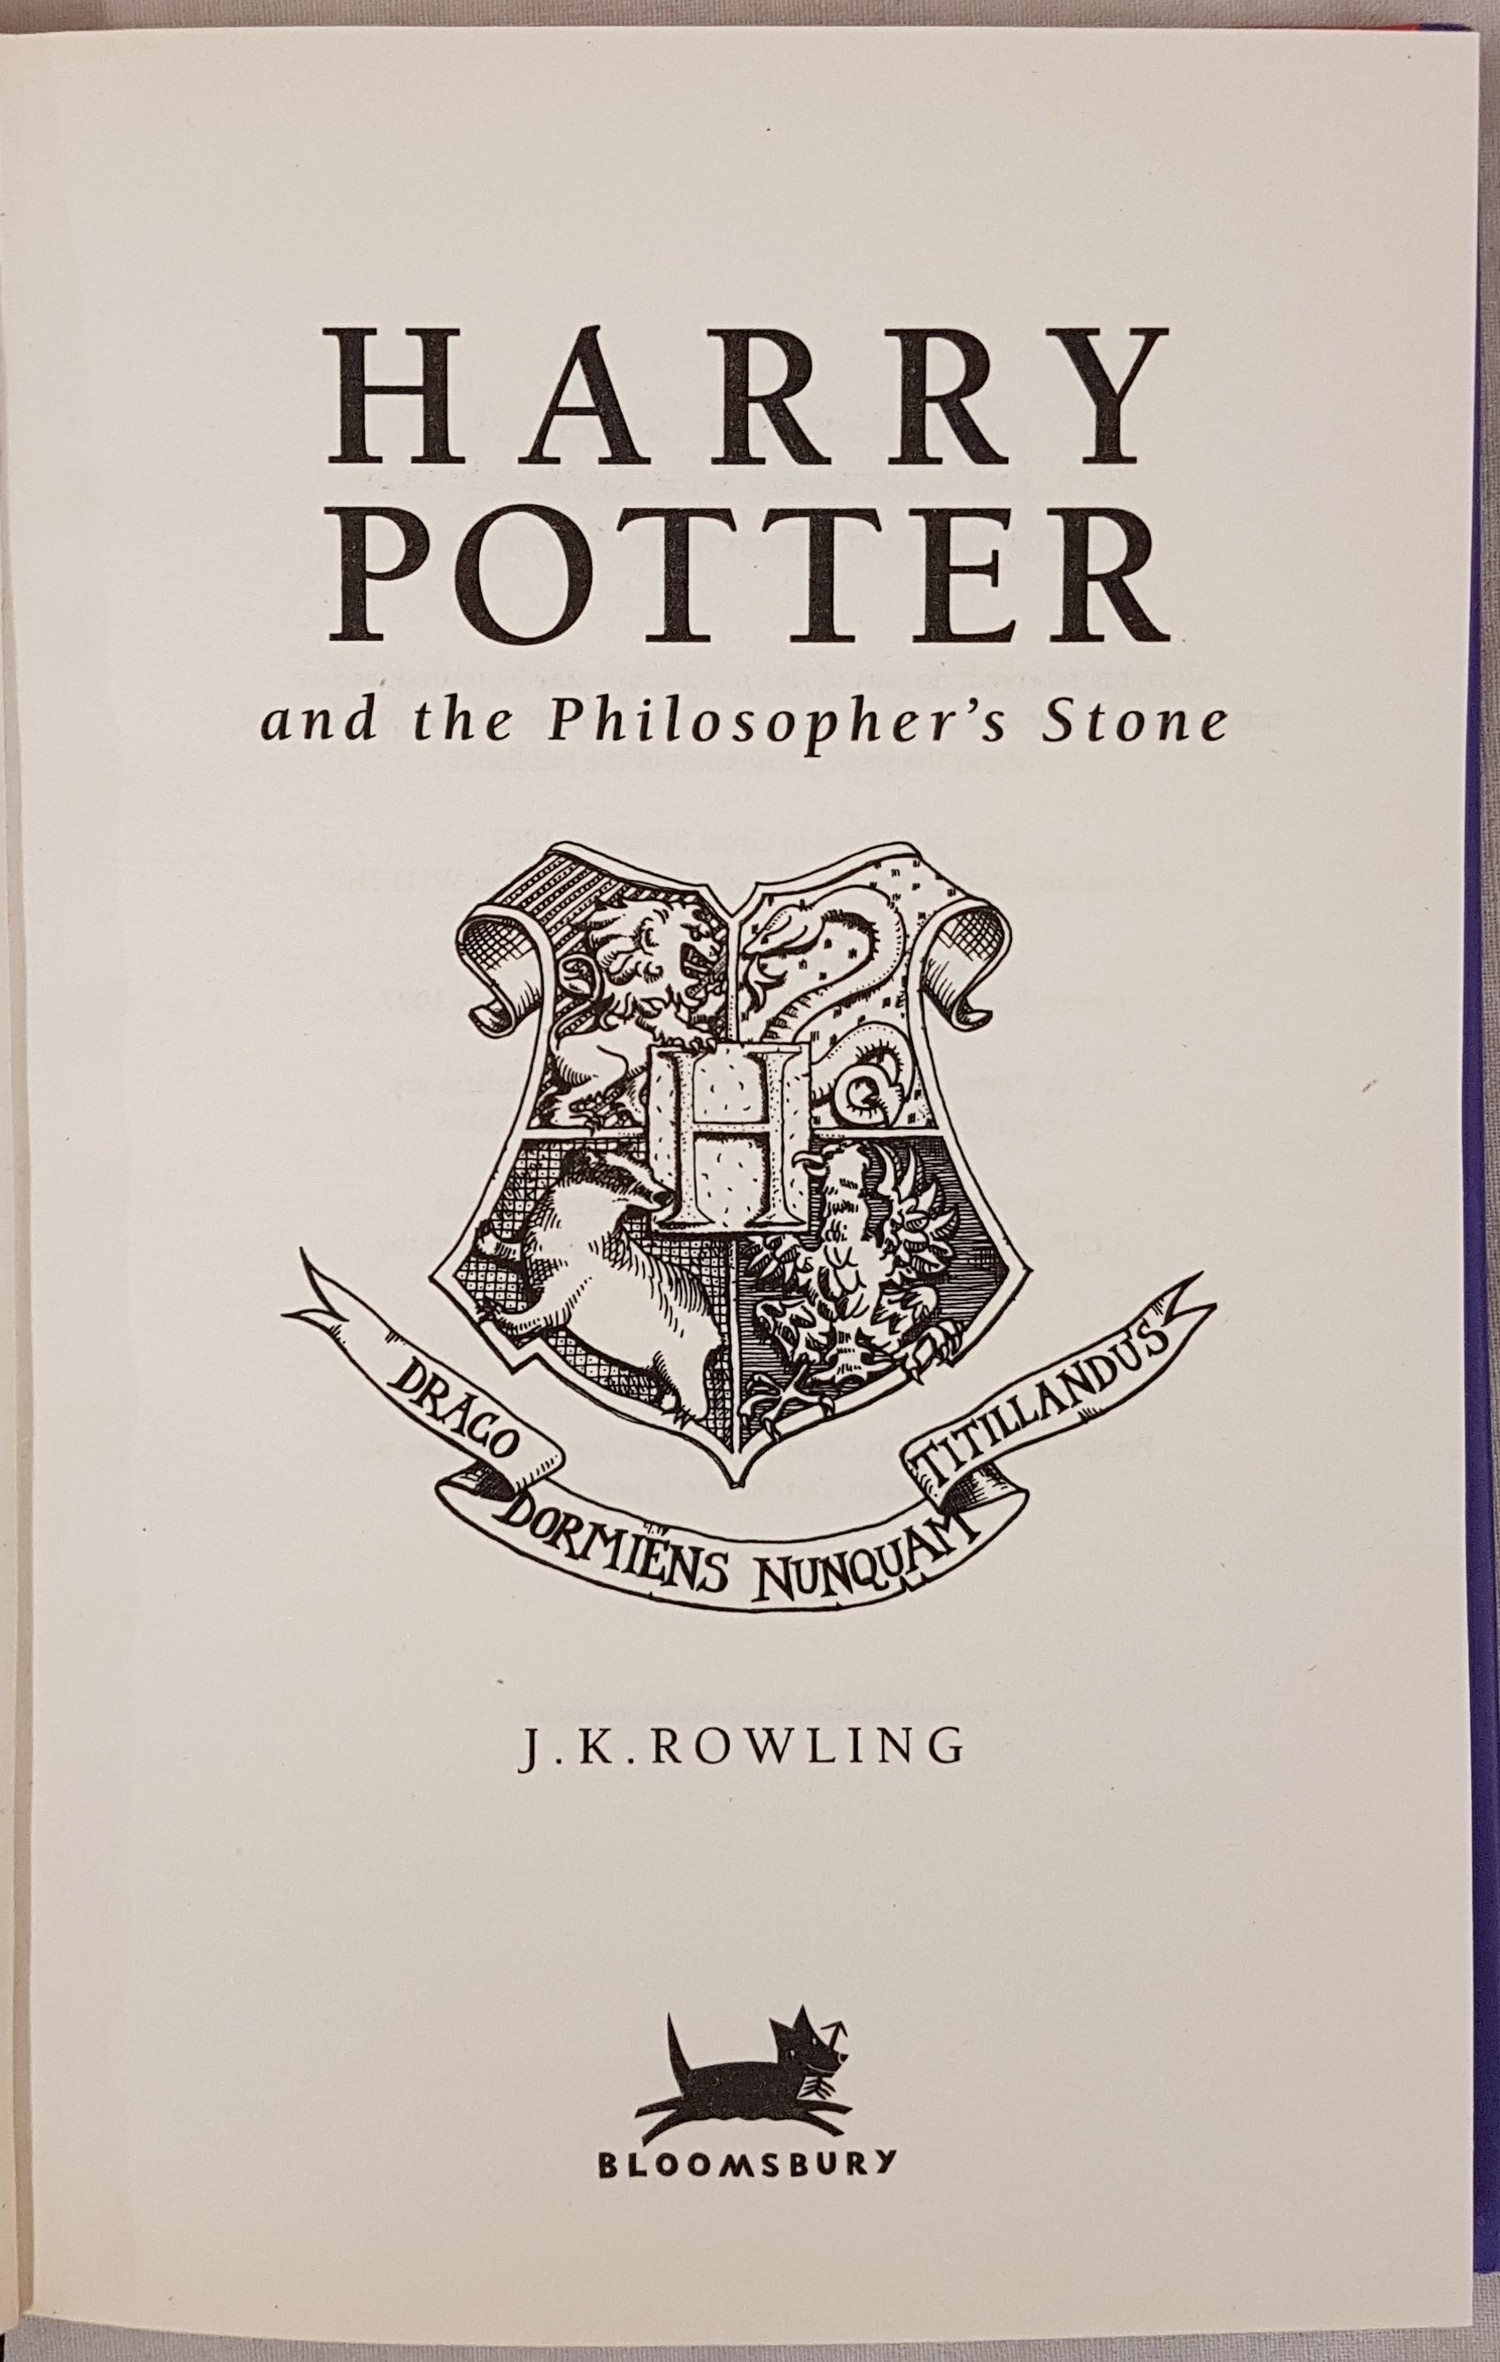 Harry Potter and the Philosopher's Stone, J.K. Rowling, 1st Edition, 28th printing, Bloomsbury, with - Image 2 of 3